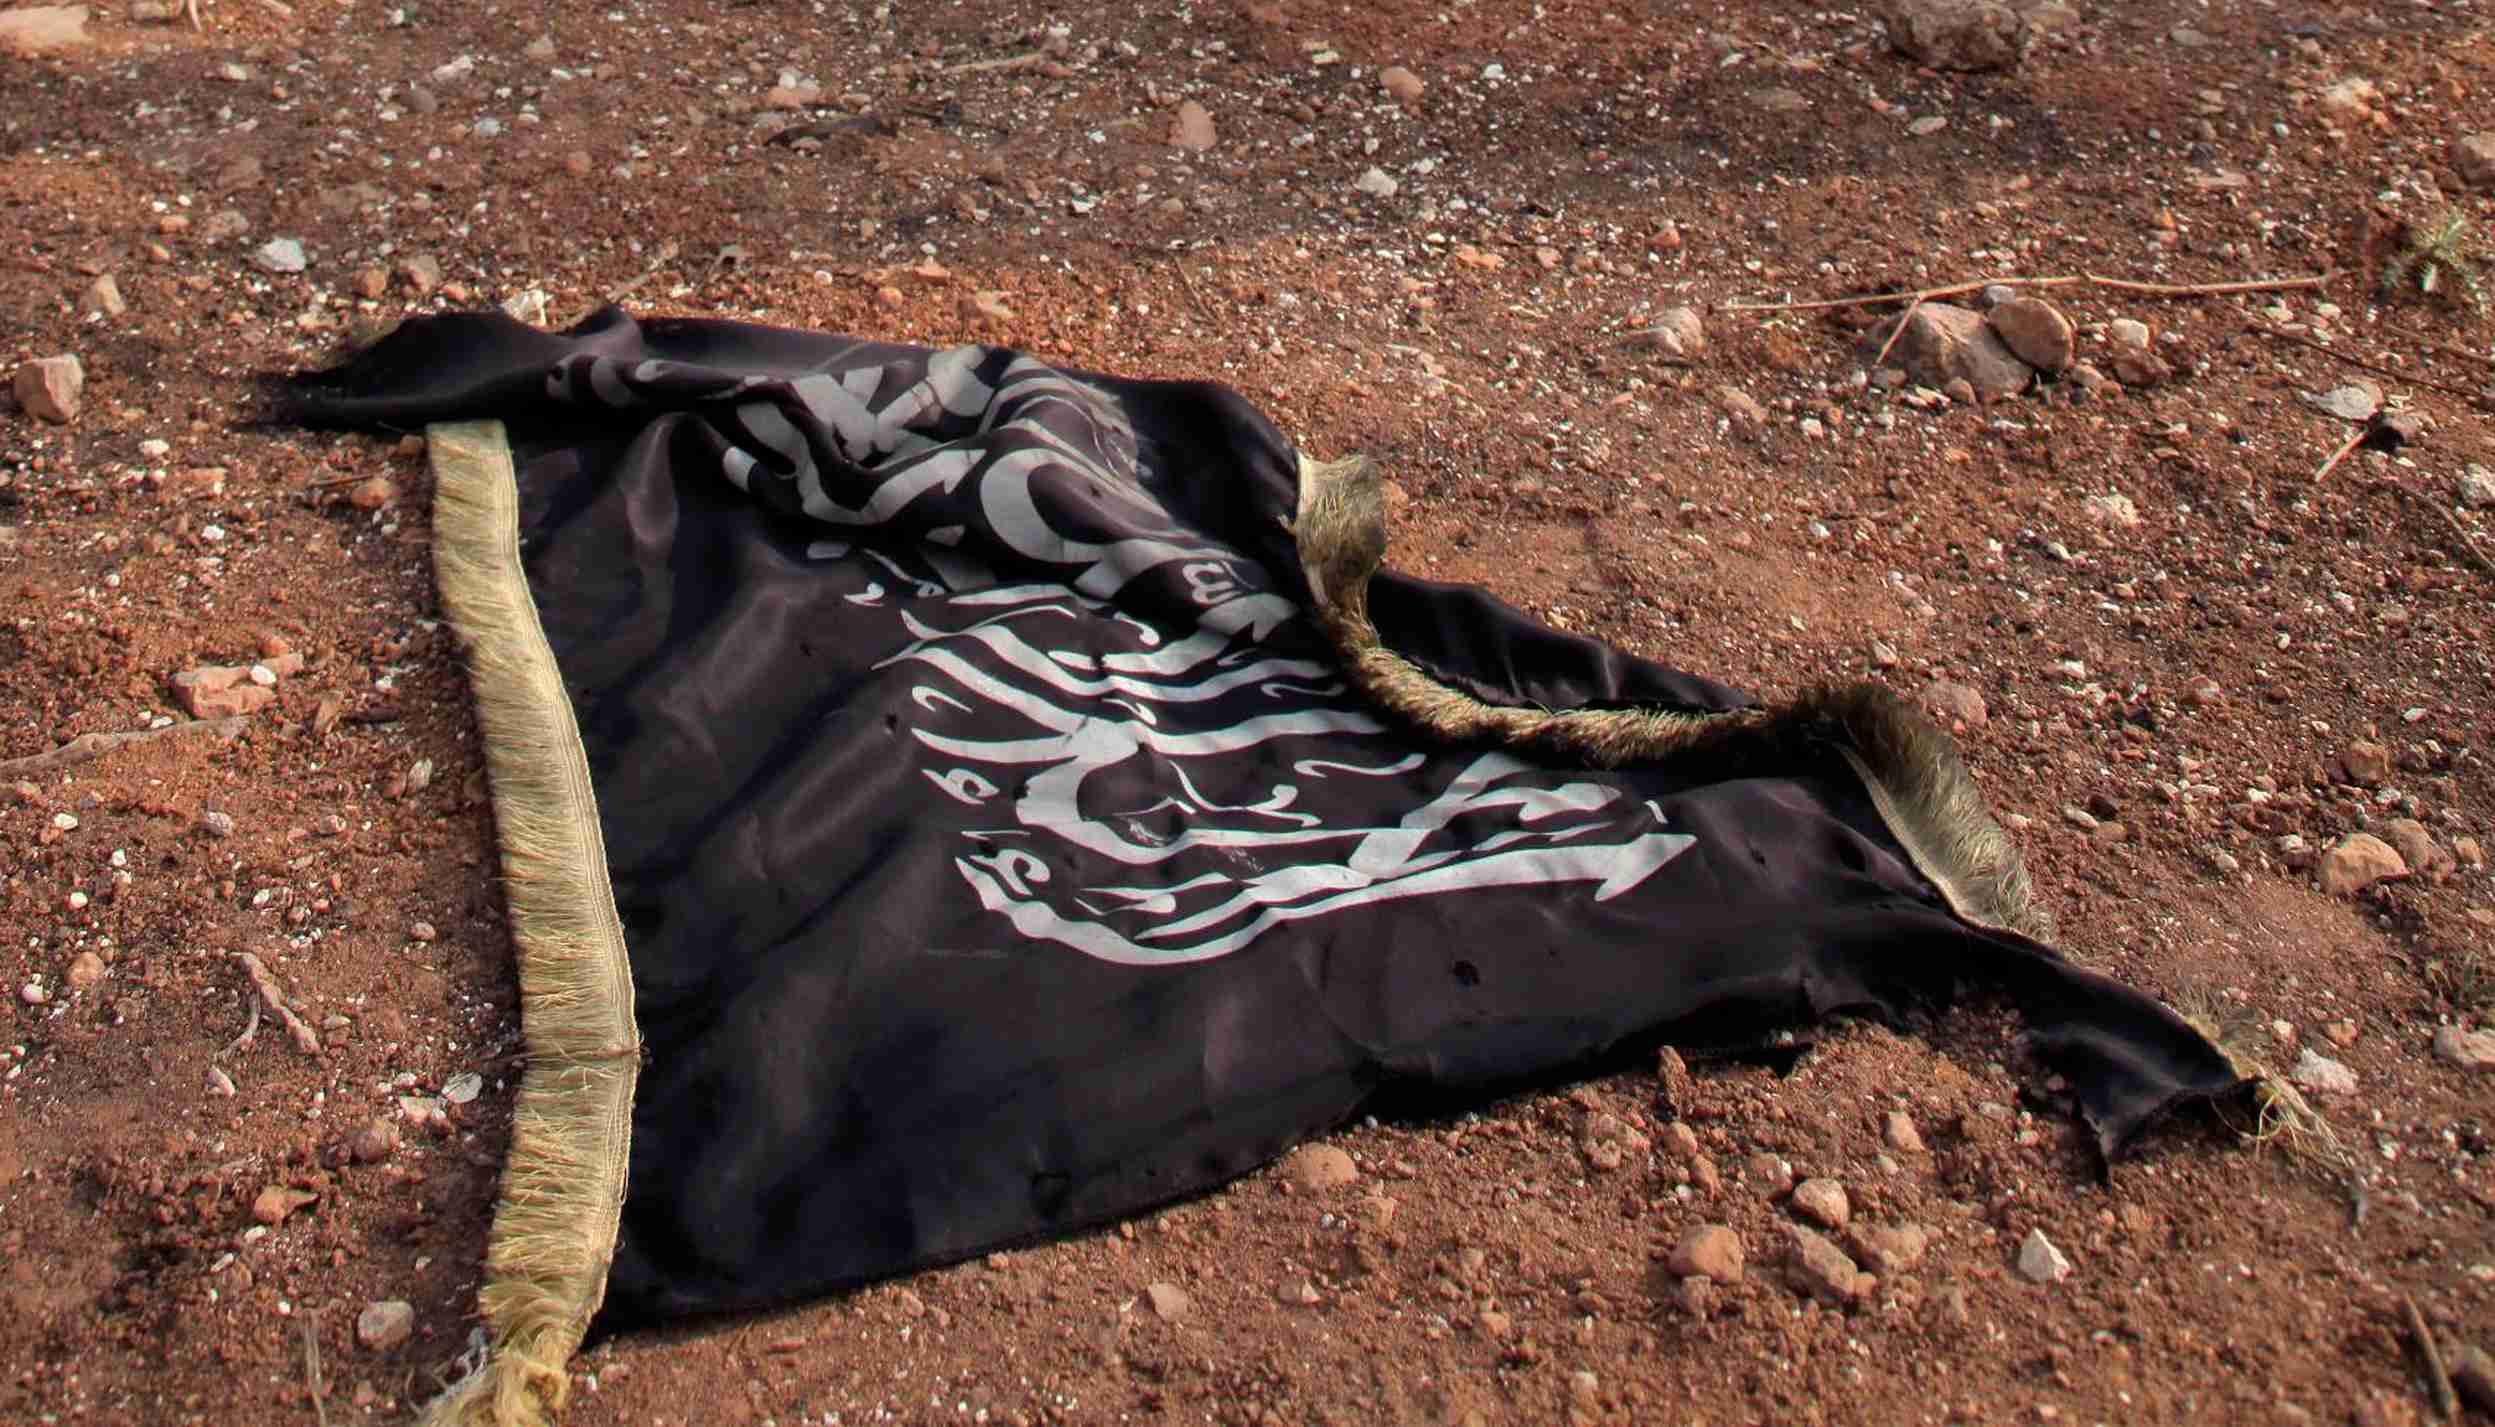 An Islamist flag is seen on the ground near the main highway leading Aleppo to Raqqa November 11, 2013. REUTERS/George Ourfalian (SYRIA - Tags: POLITICS CIVIL UNREST) - GM1E9BB1PZB01